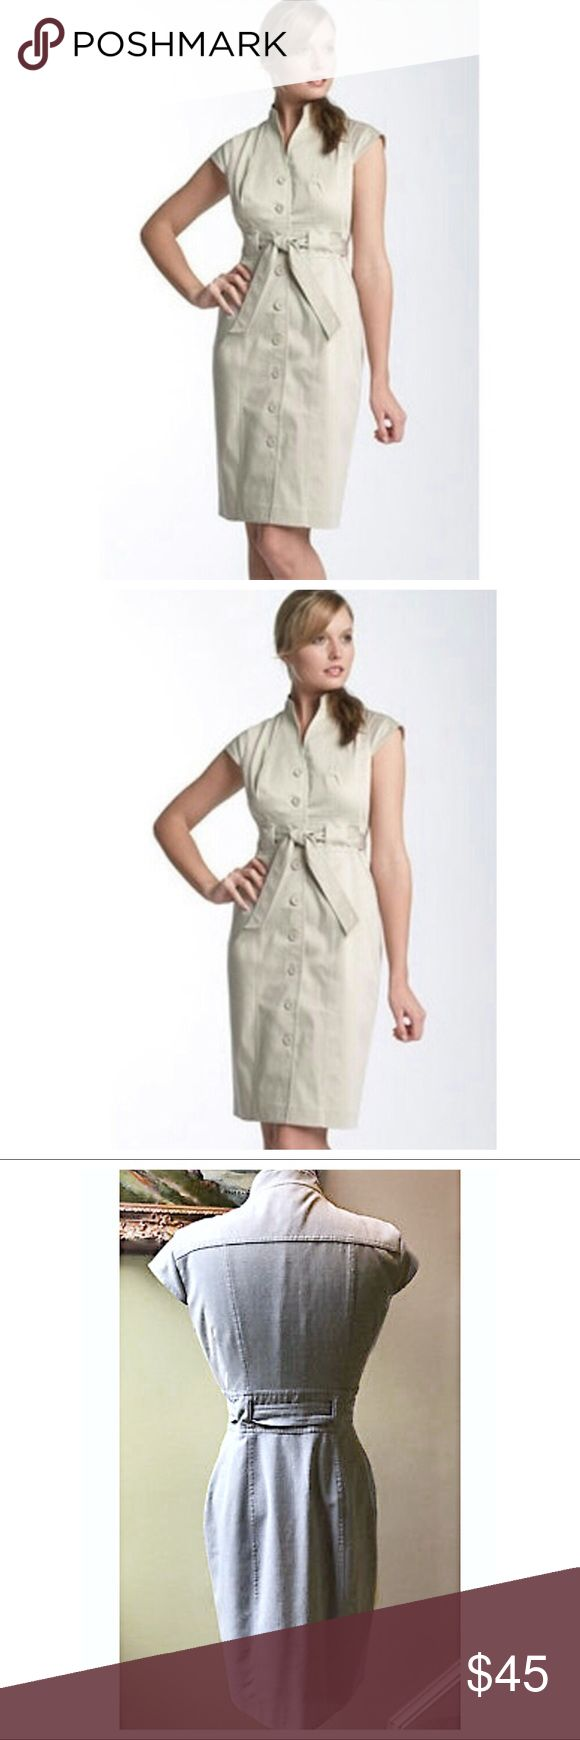 Calvin Klein Belted Shirt Dress Button Up Beige Khaki / Tan / Beige colored Linen Button Front Shirt Dress with entwined matching fabric belt. Calvin Klein logo buttons. Classic Chic Dress. Great for business/office wear while can still reflect cool casual style with ease. Well tailored & flattering silhouette. Sophisticated Style you can't go wrong with. The last pic is this dress in a different color Excellent flawless condition Calvin Klein Dresses